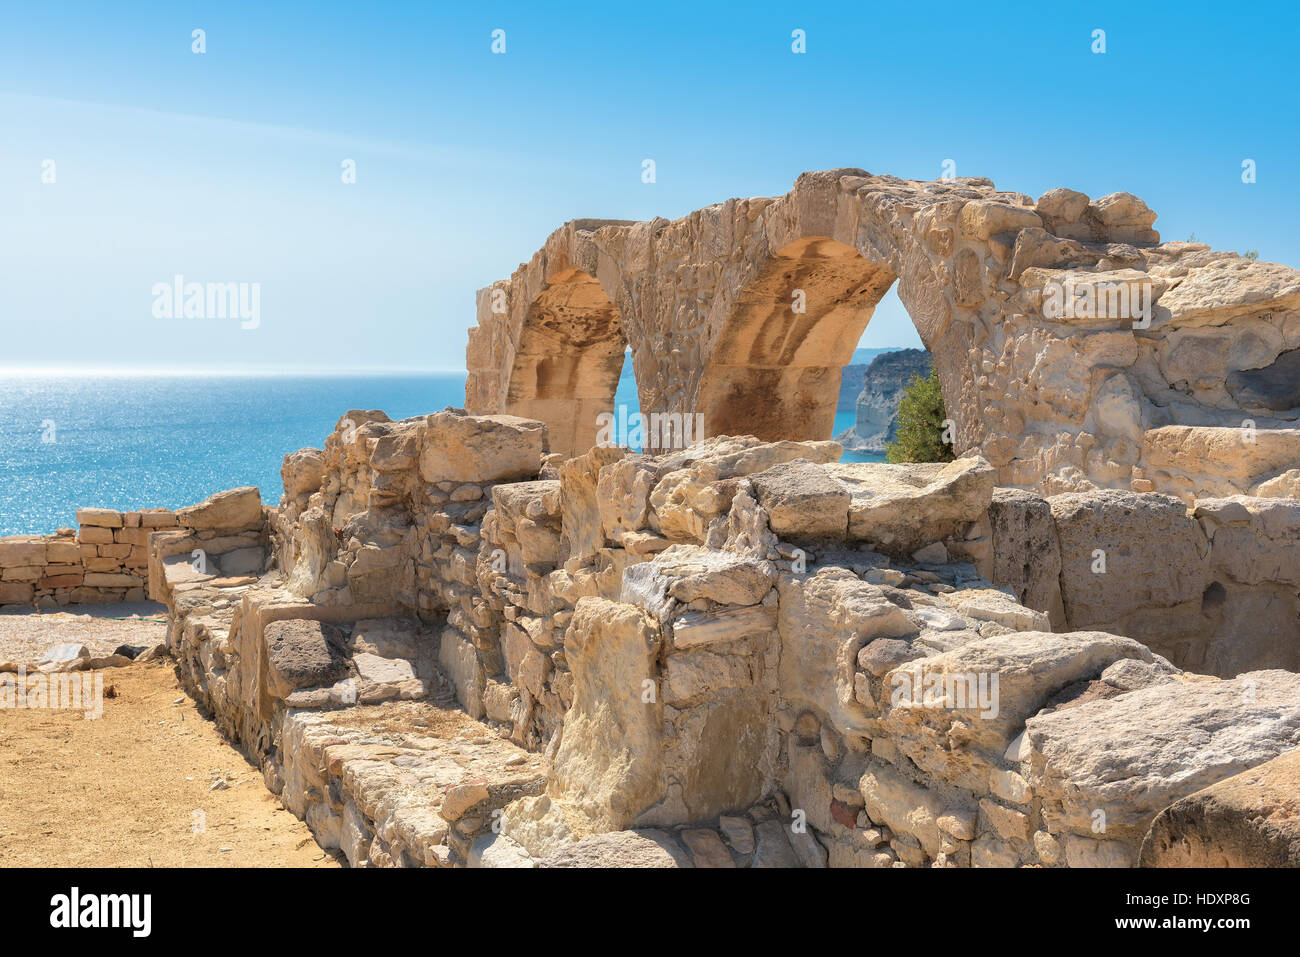 Ancient Greek arches ruin city of Kourion, Limassol, Cyprus - Stock Image